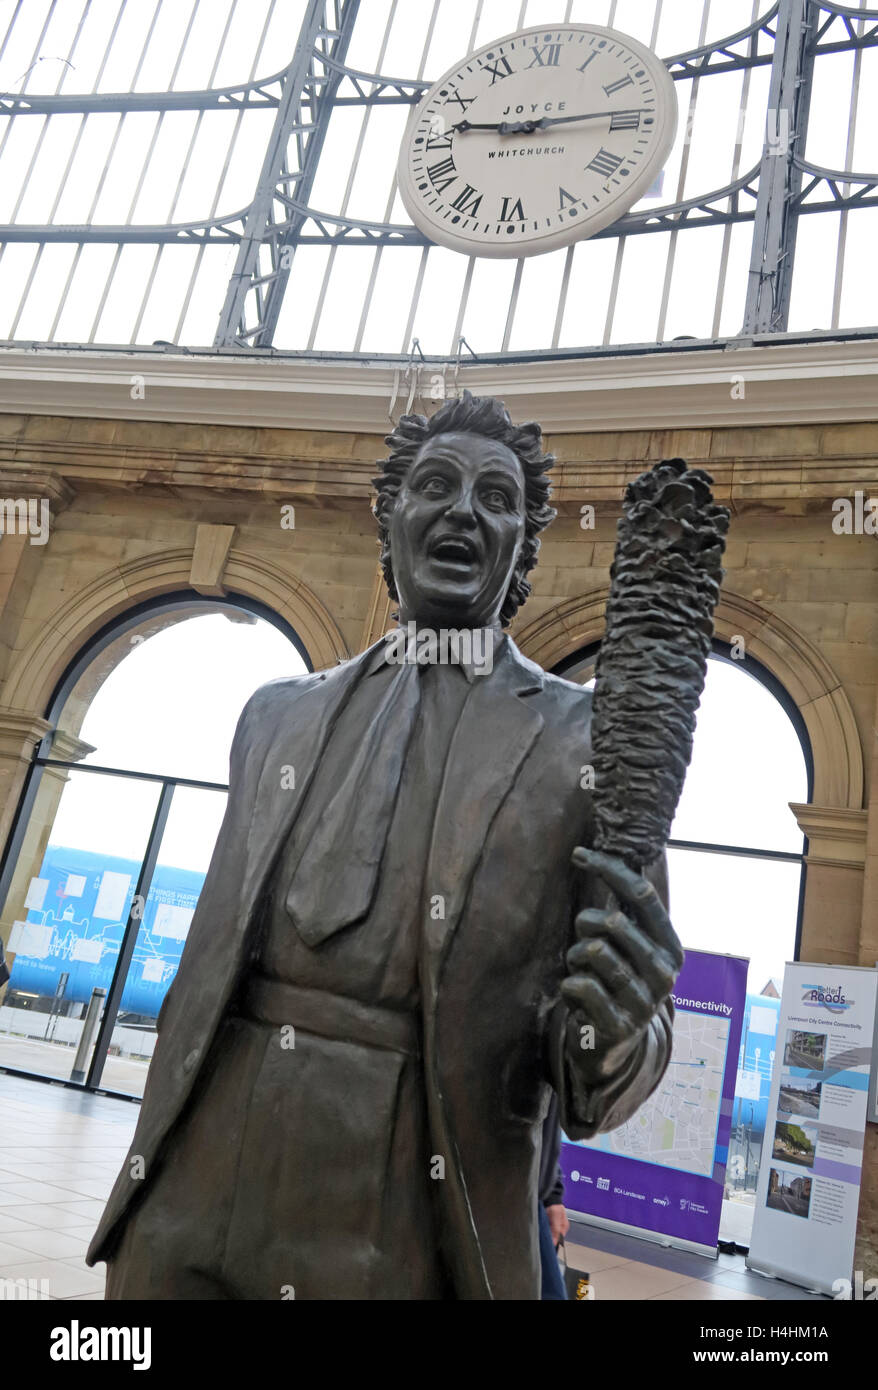 Street,Rail,Mainline,art,sculpture,comedian,man,funny,humour,scouse,Funnyman,personality,OBE,Kenneth,Arthur,Landmark,Diddy,men,tickling,stick,music,hall,drama,actor,entertainer,comedy,bronze,Lime St,Lime Street,Liverpool Lime St,Ken Dodd,Kenneth Arthur Dodd,Diddy Men,Knotty Ash,GoTonySmith,@HotpixUK,Tony,Smith,UK,GB,Great,Britain,United,Kingdom,English,British,England,alloy,metal,ash,clock,historic,Buy Pictures of,Buy Images Of,Images of,Stock Images,Tony Smith,United Kingdom,Great Britain,British Isles